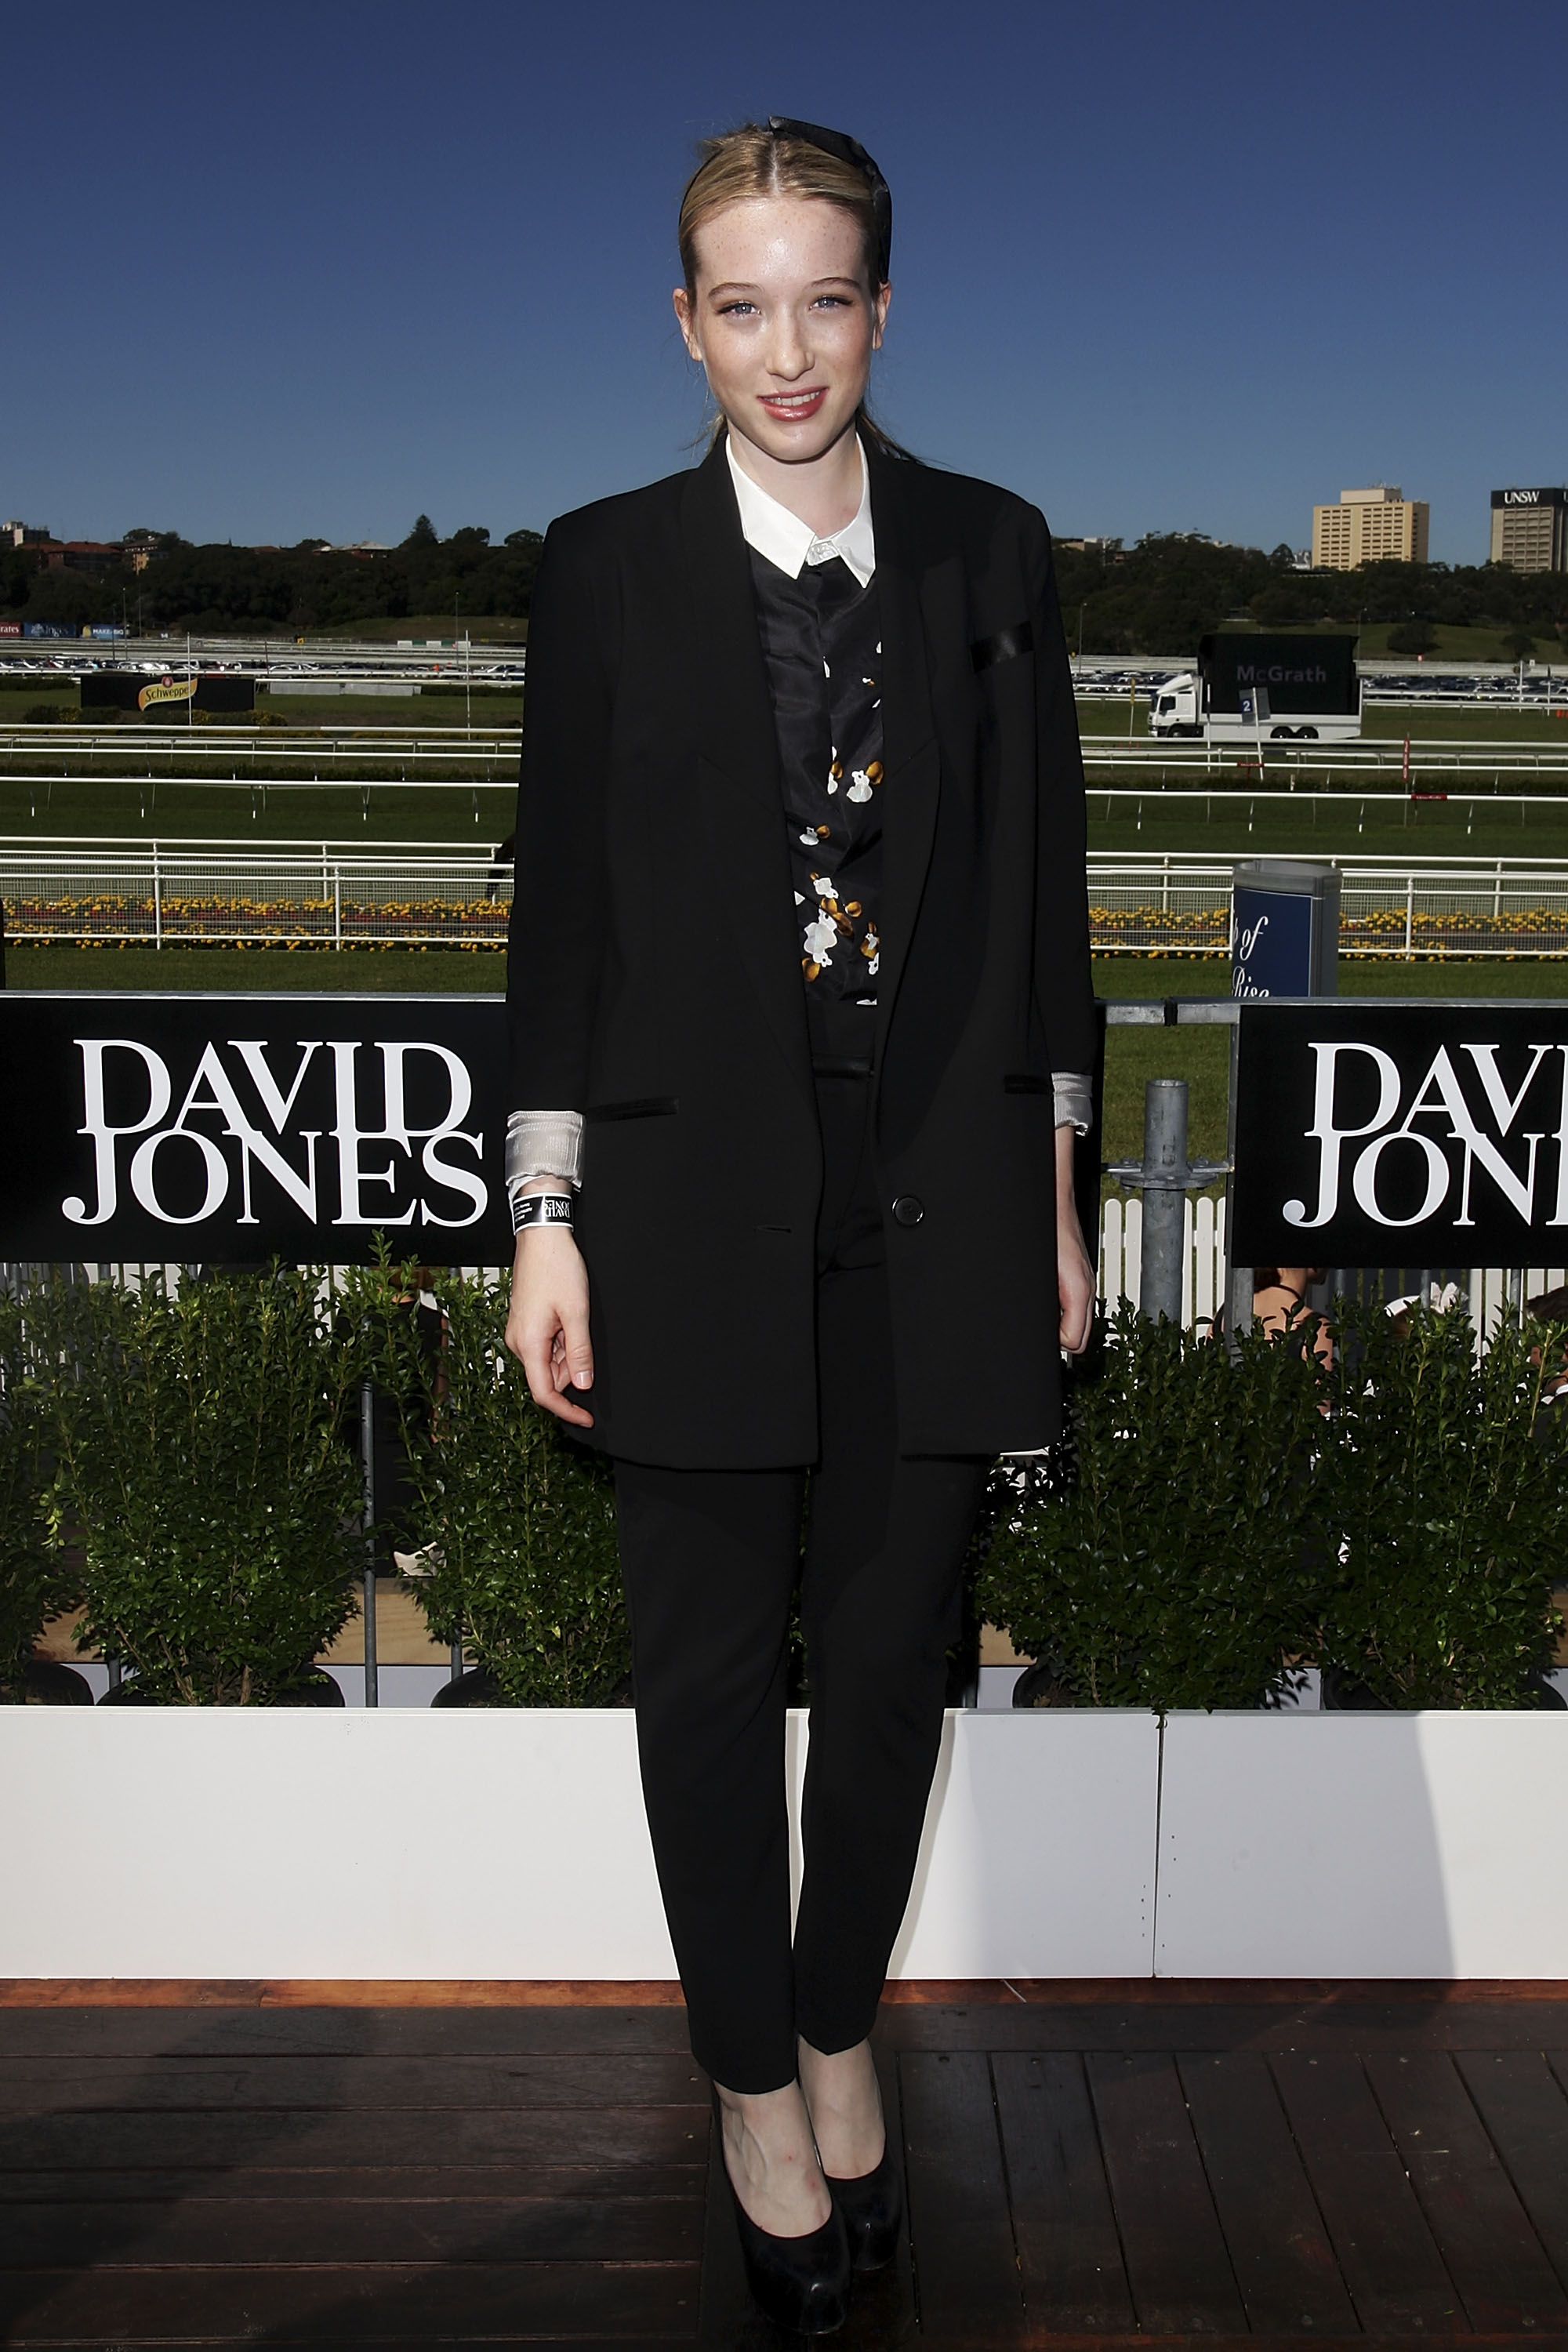 Sophie Lowe opted for a chic manstyle inspired get up for Saturday's Derby Day.